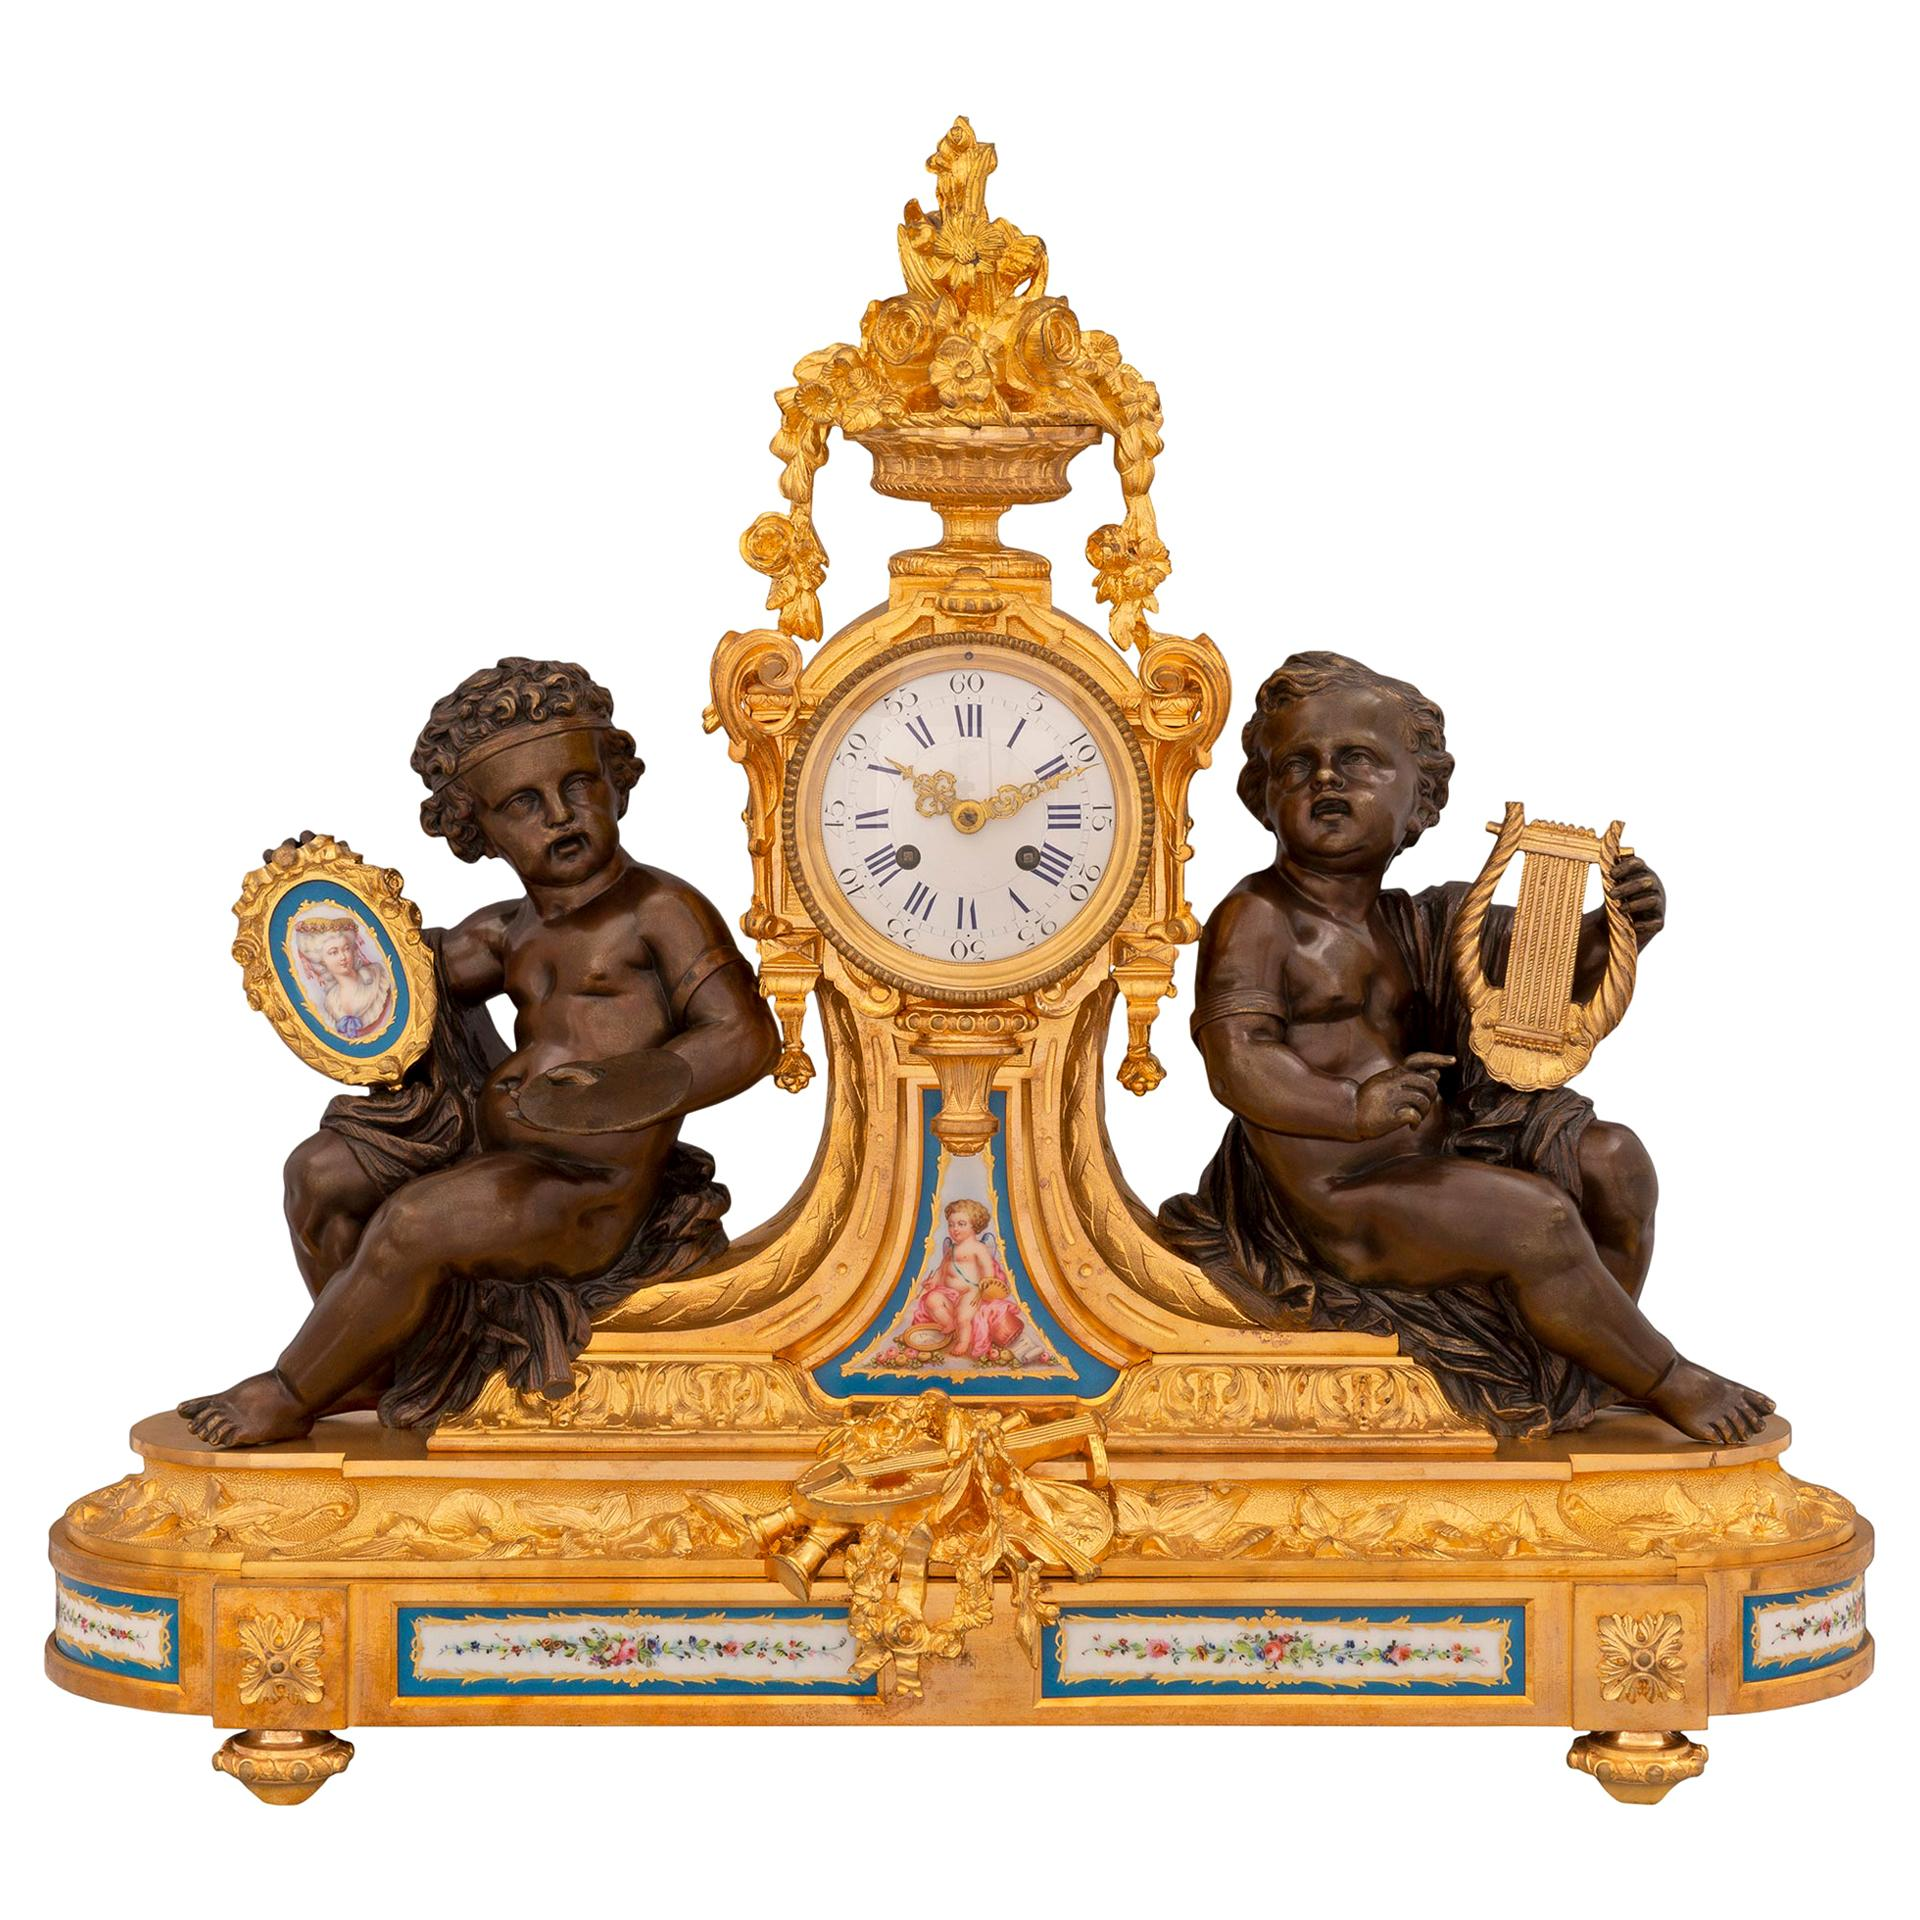 French 19th Century Louis XVI Style Sèvres Porcelain and Ormolu Clock